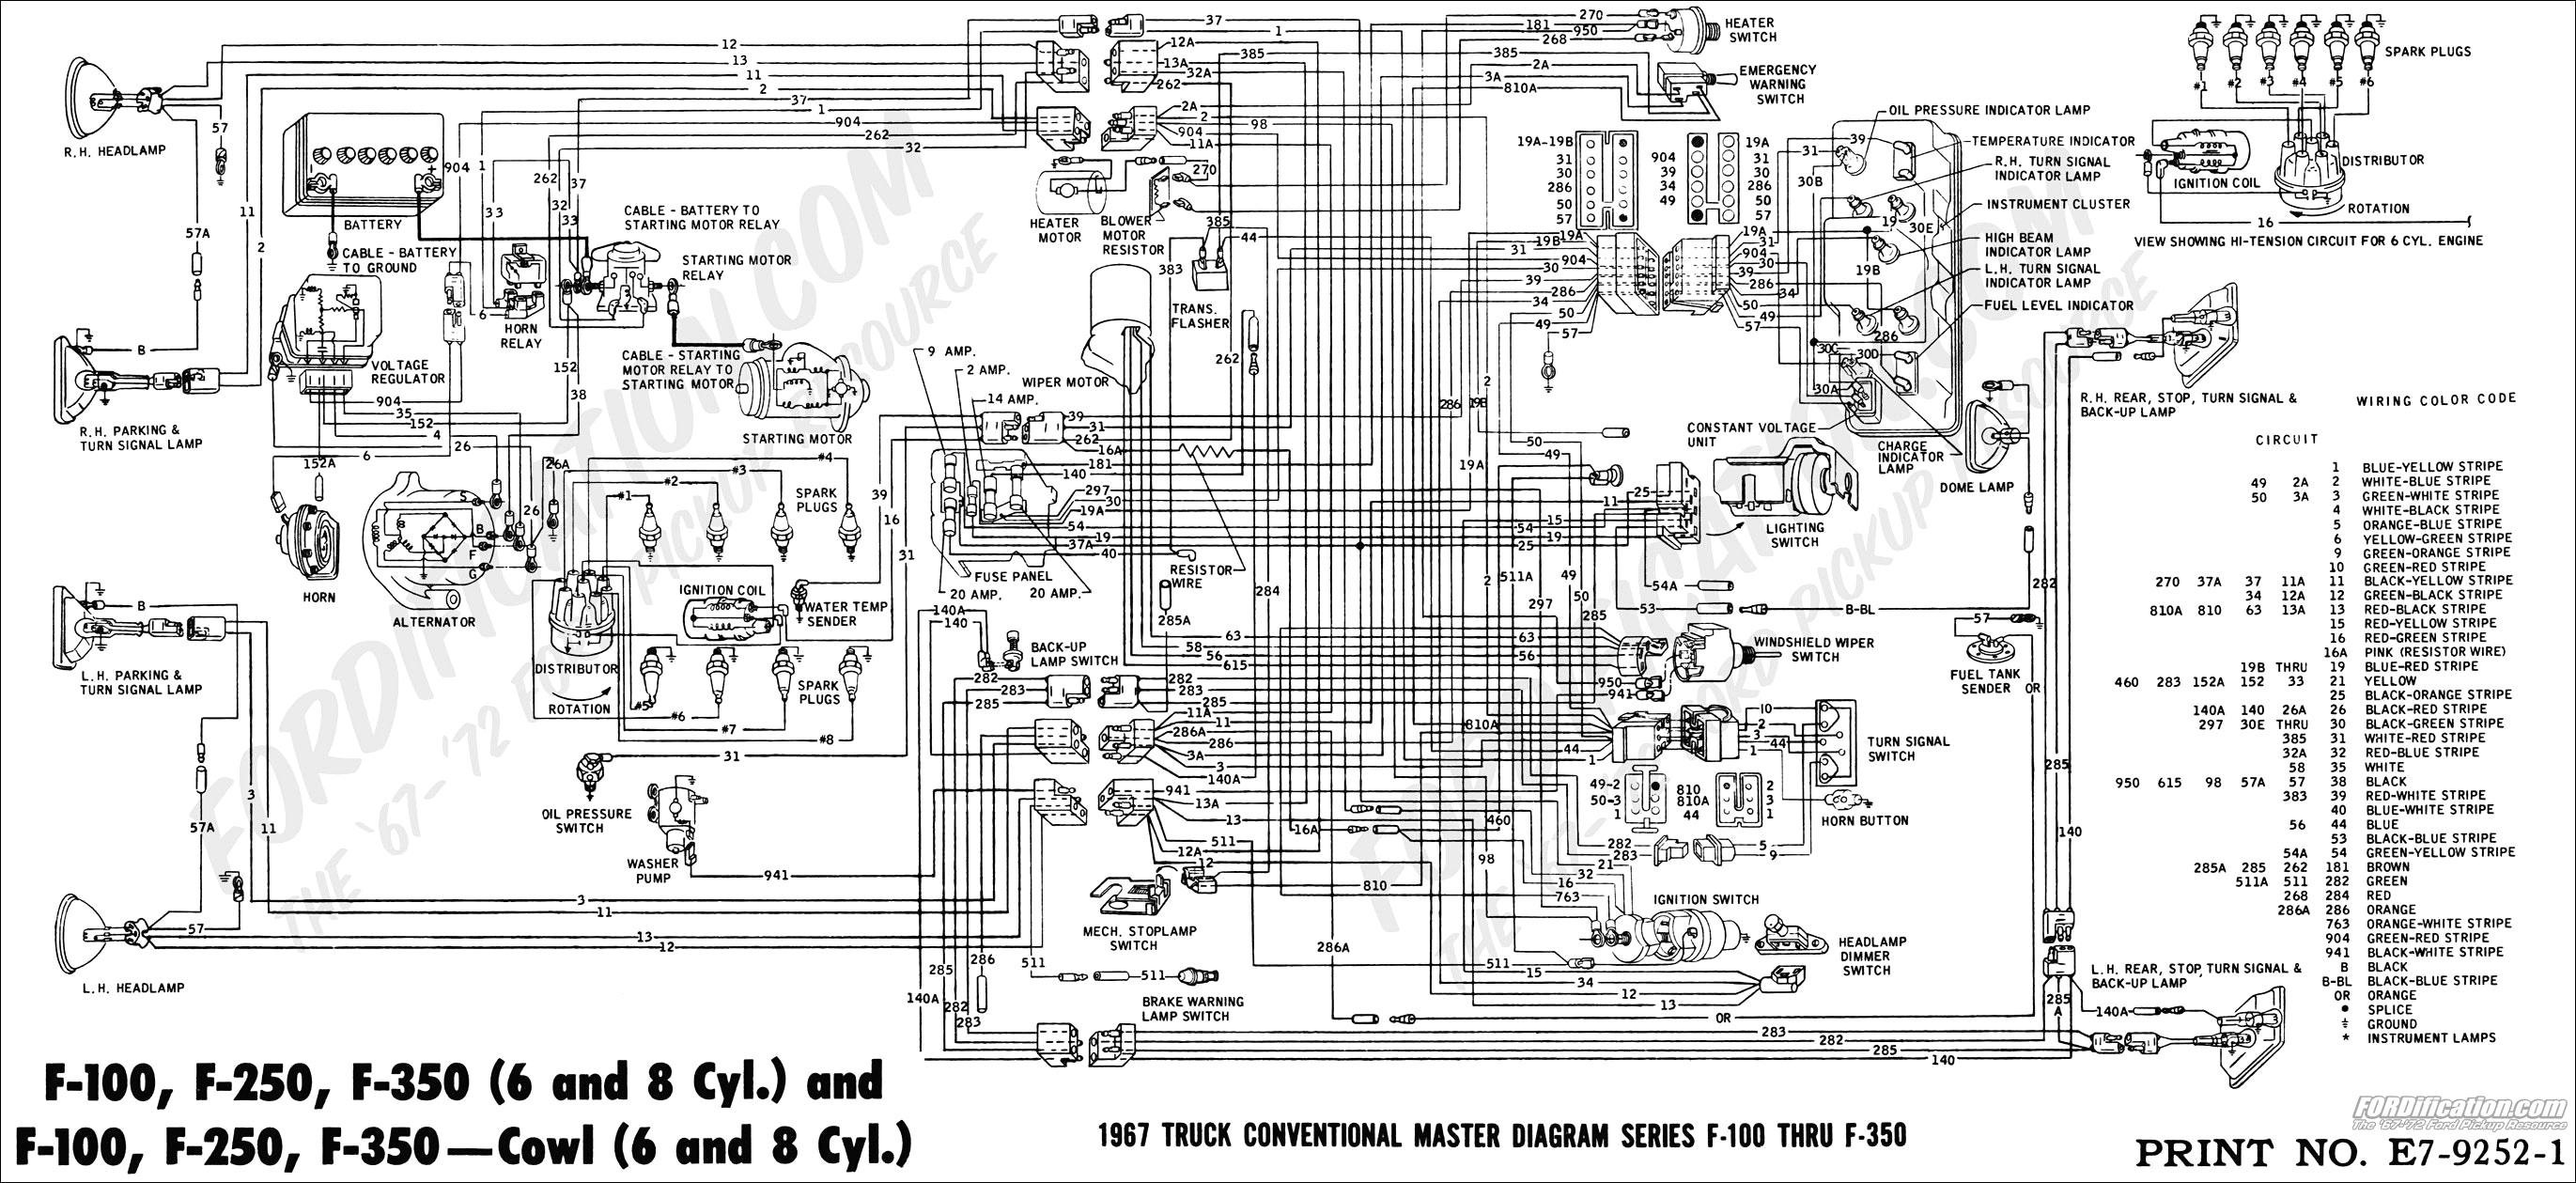 1982 ford bronco wiring easy to read wiring diagrams u2022 rh  mywiringdiagram today 89 Ford Bronco Fuse Box Diagram 1992 Ford Bronco Fuse  Box Diagram